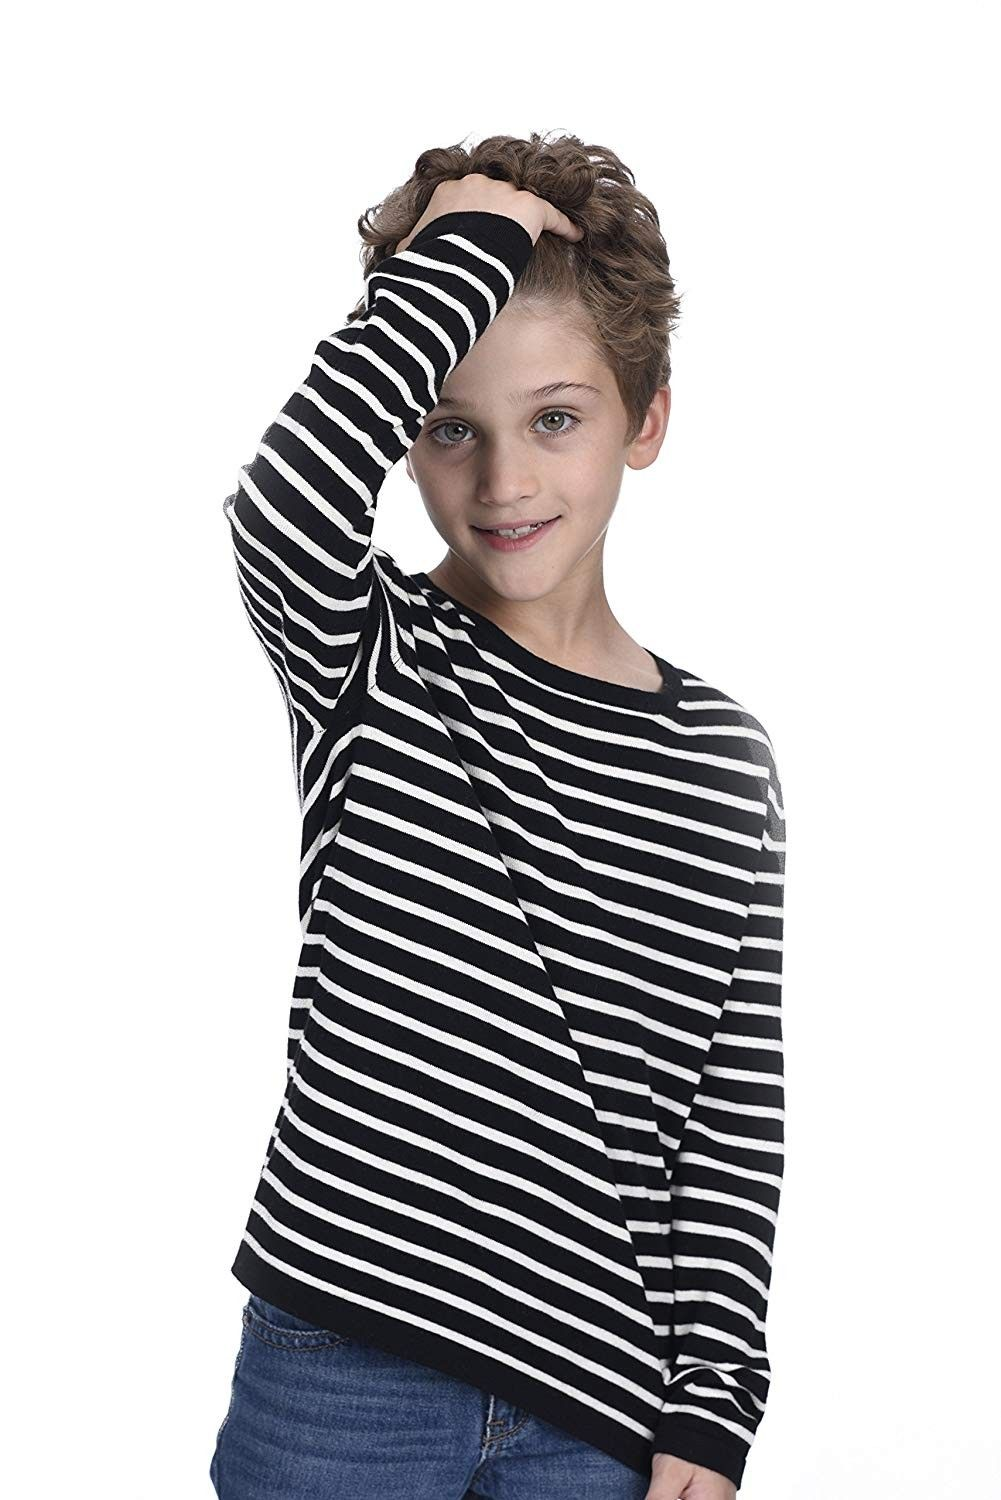 neck sale clothing of childrens